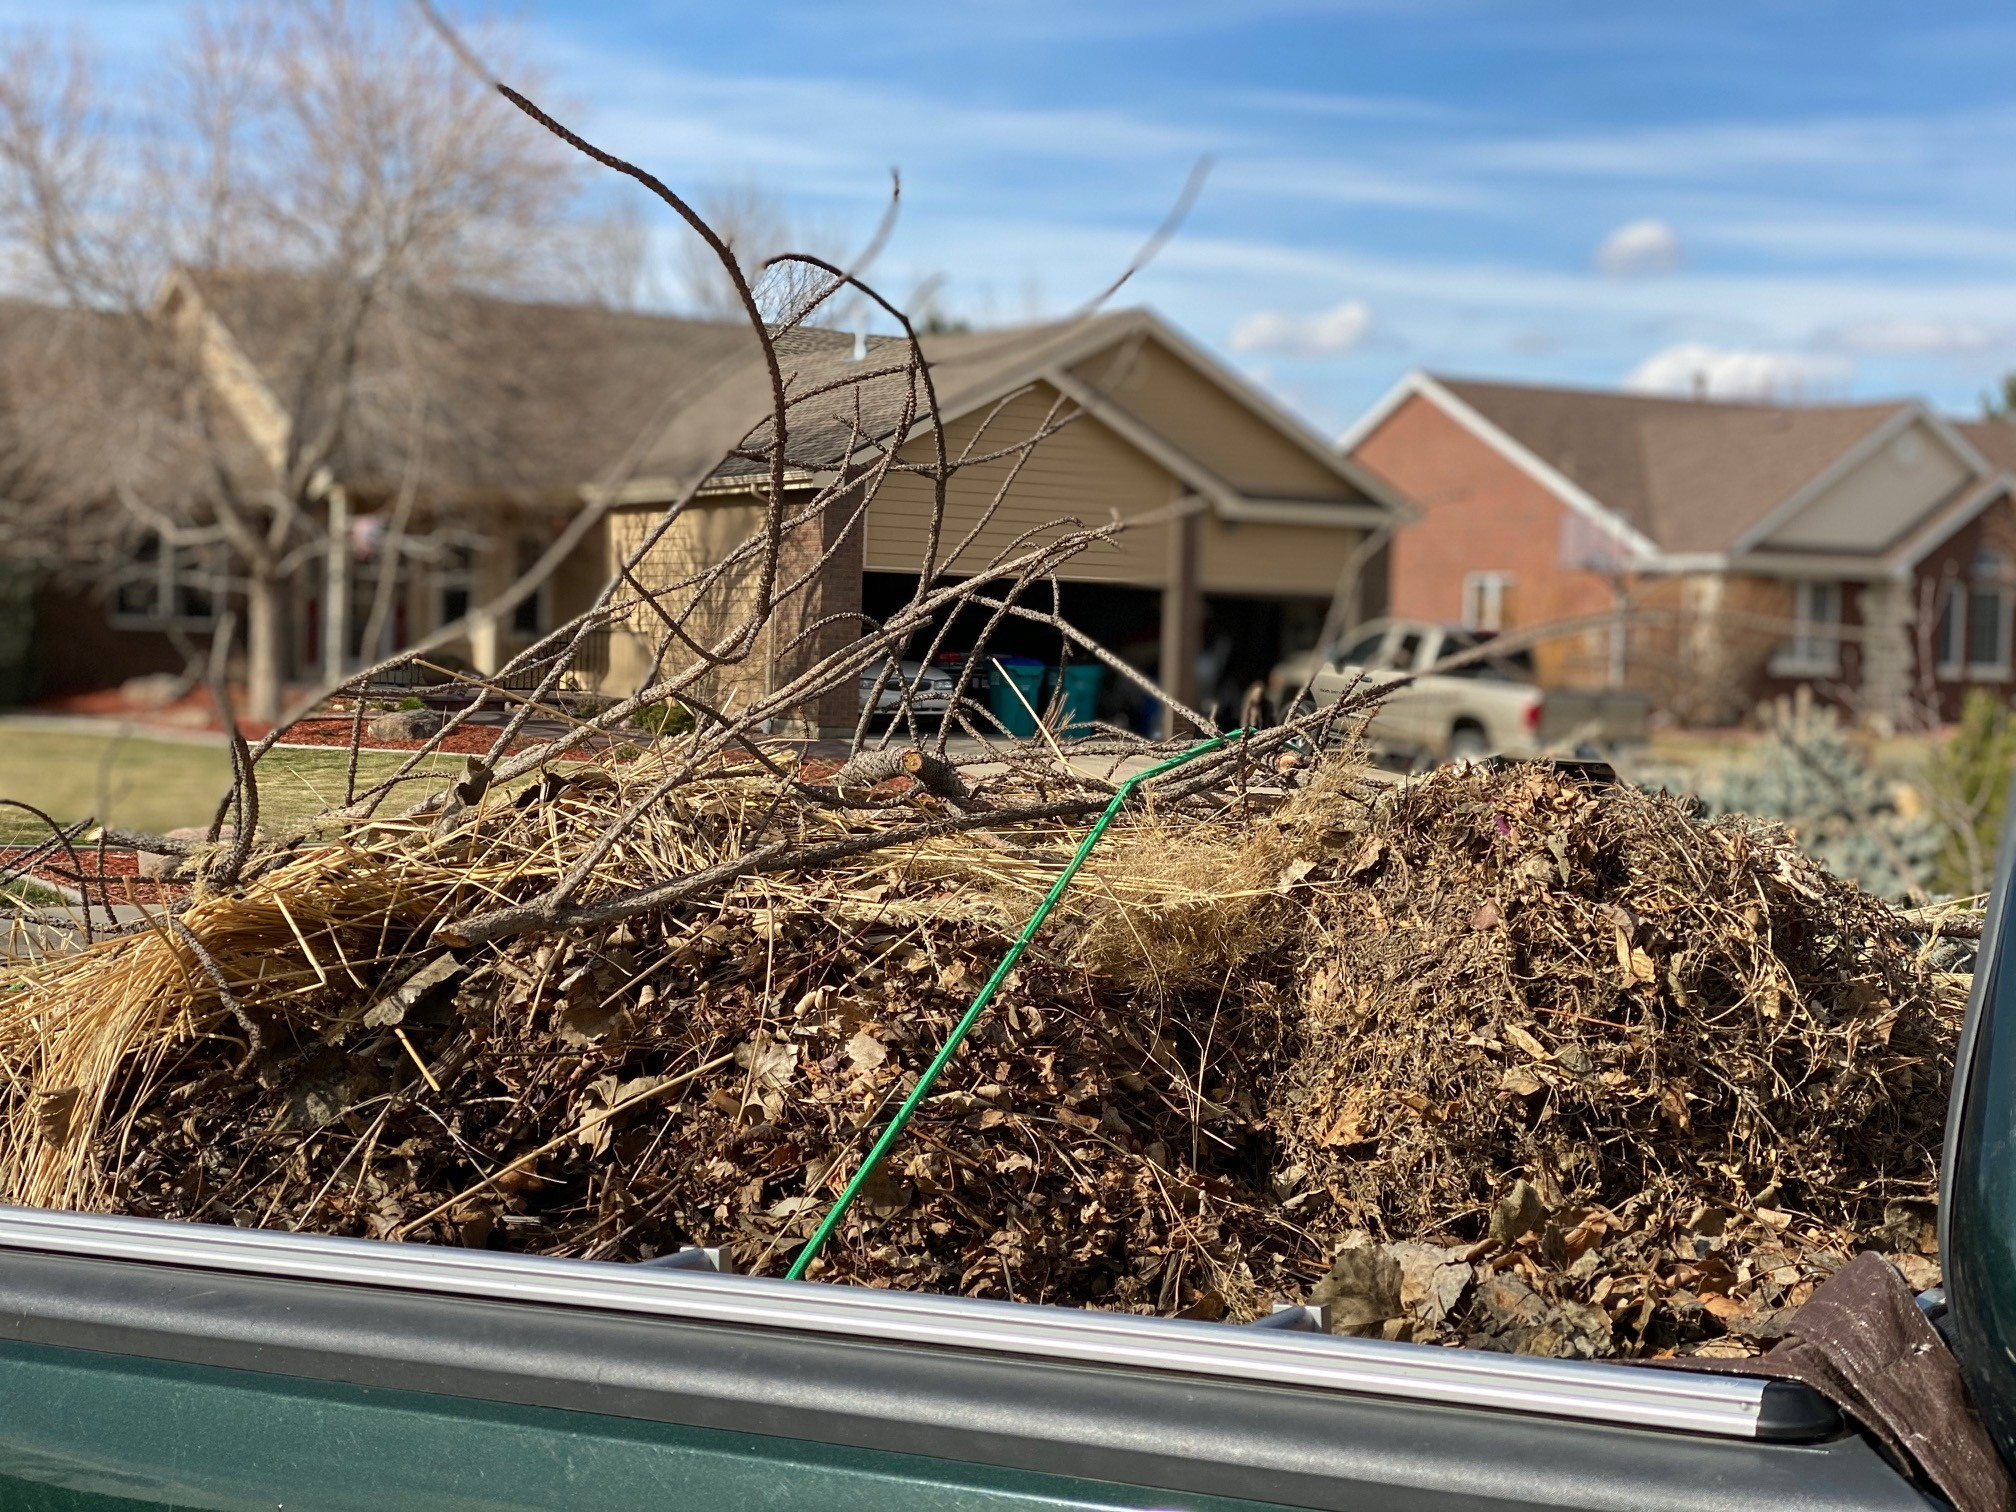 compost bin with brown material and stick